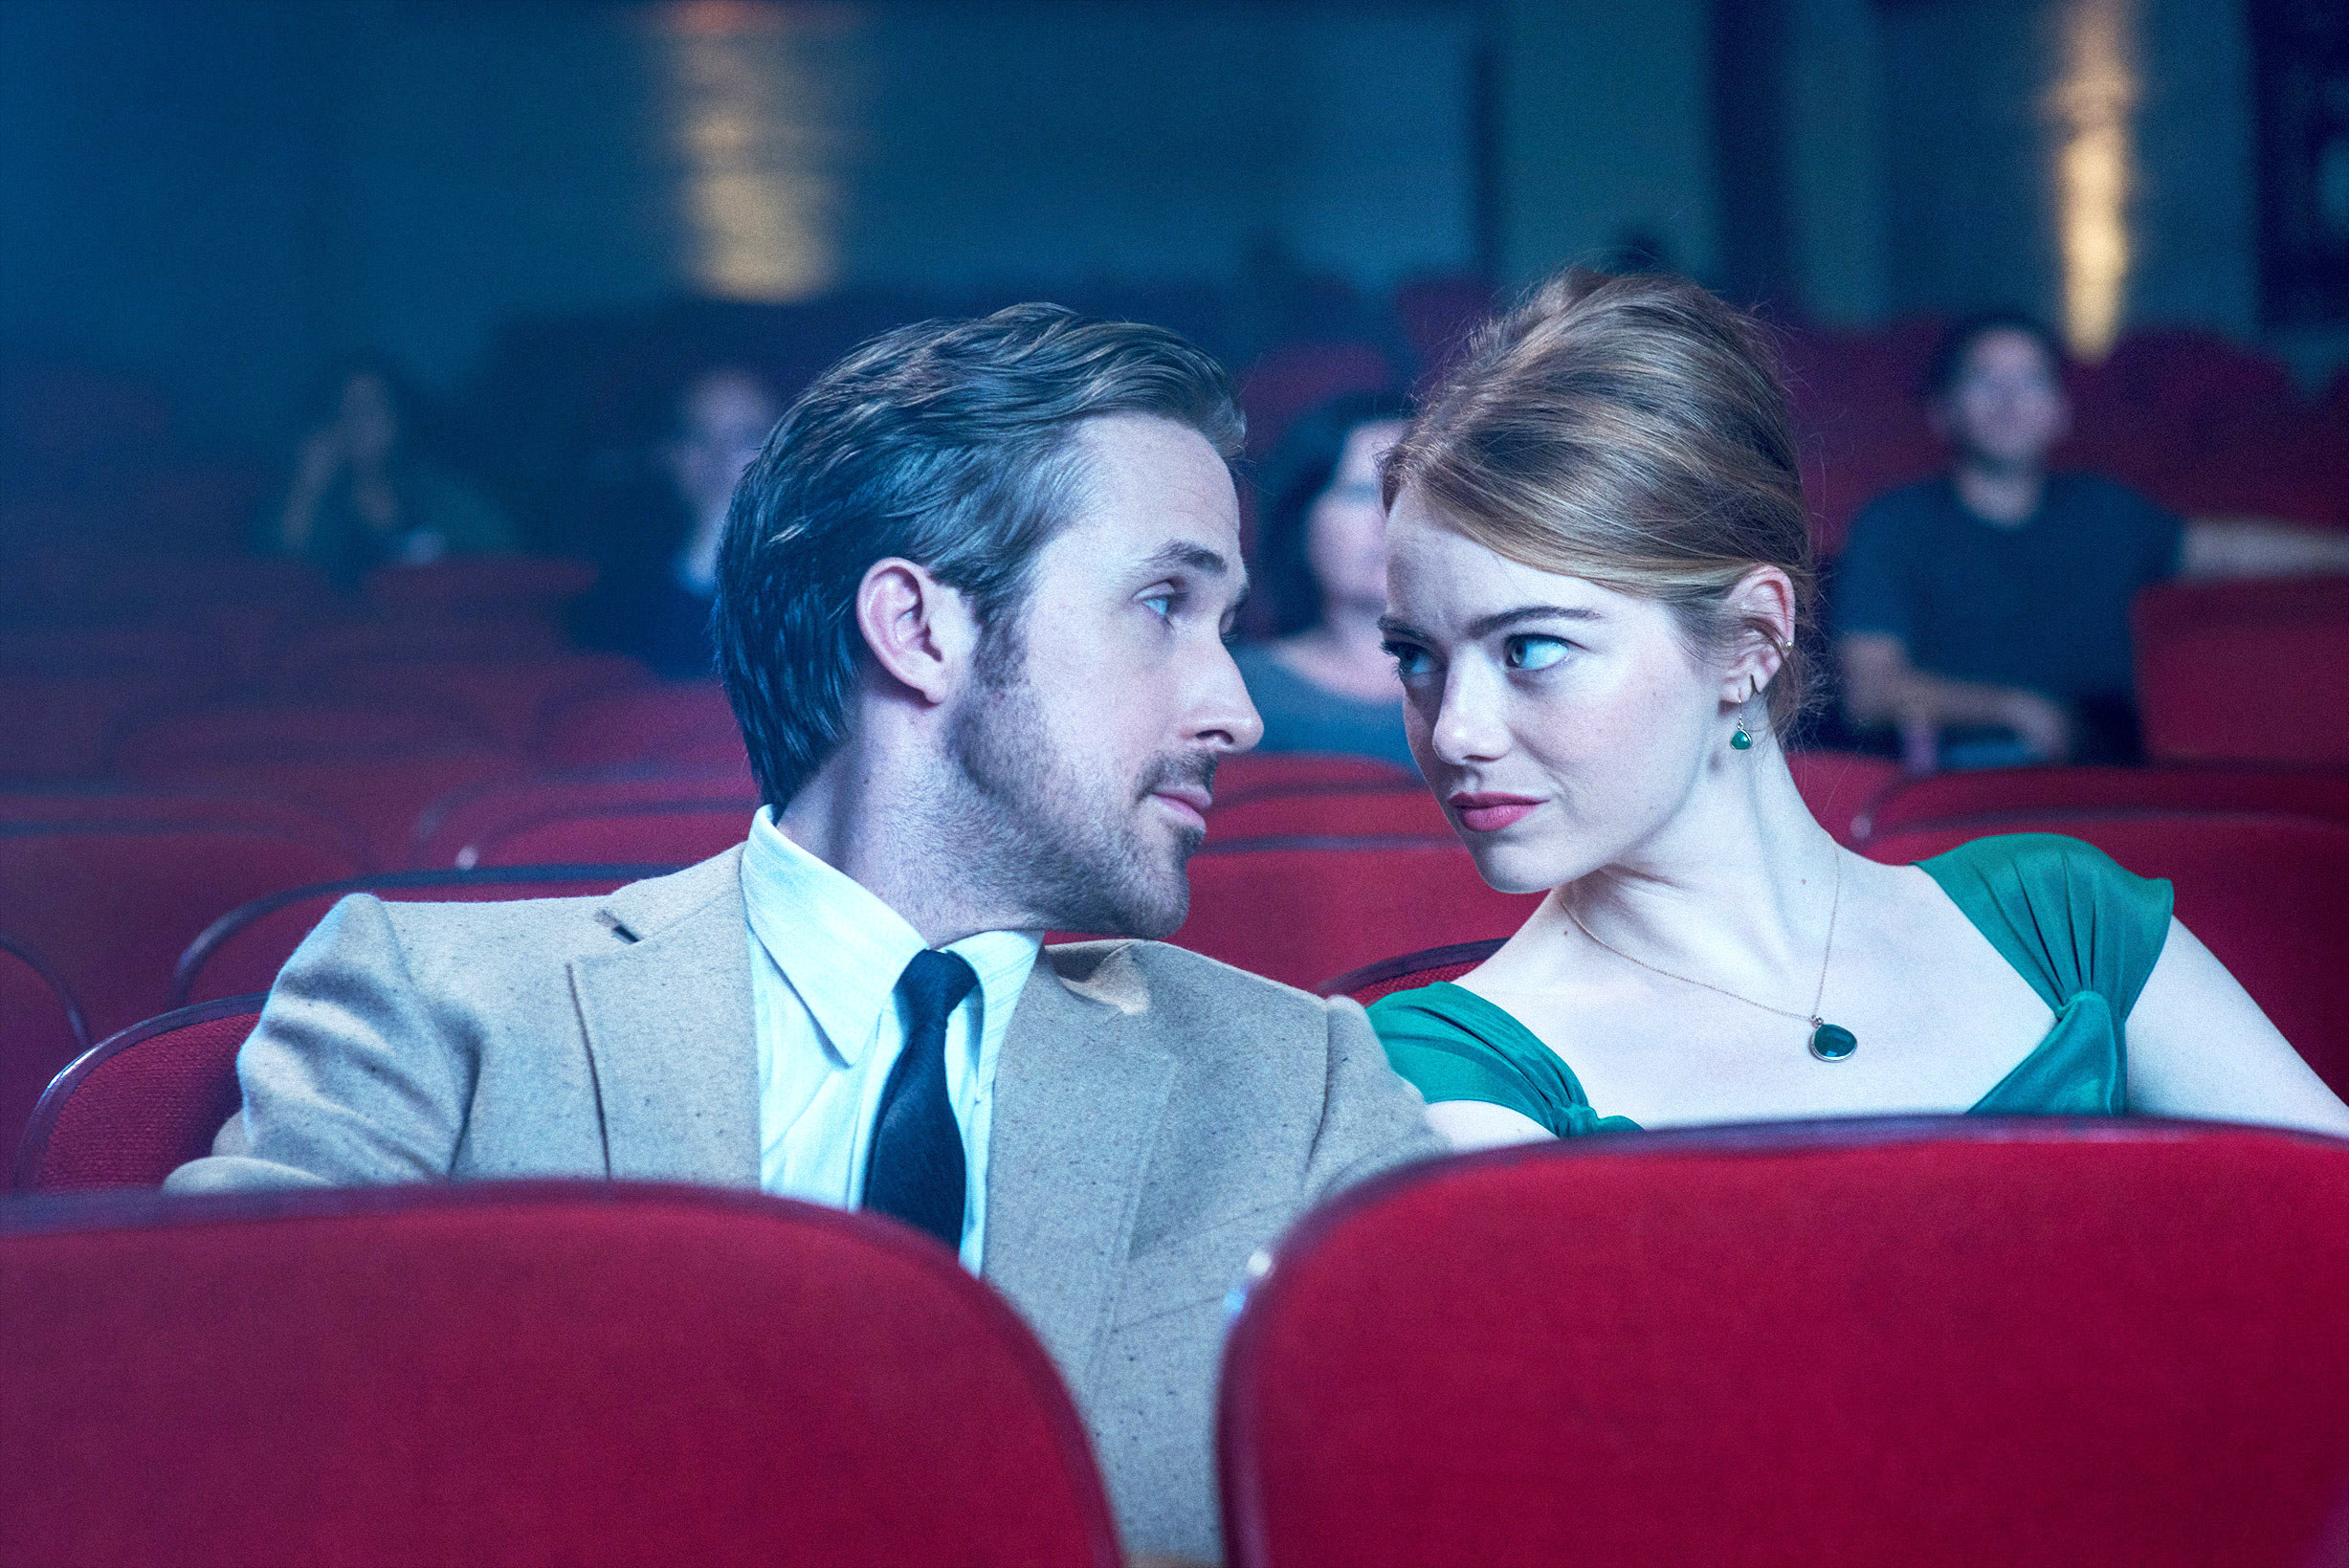 Ryan Gosling and Emma Stone looking at each other in a movie theater